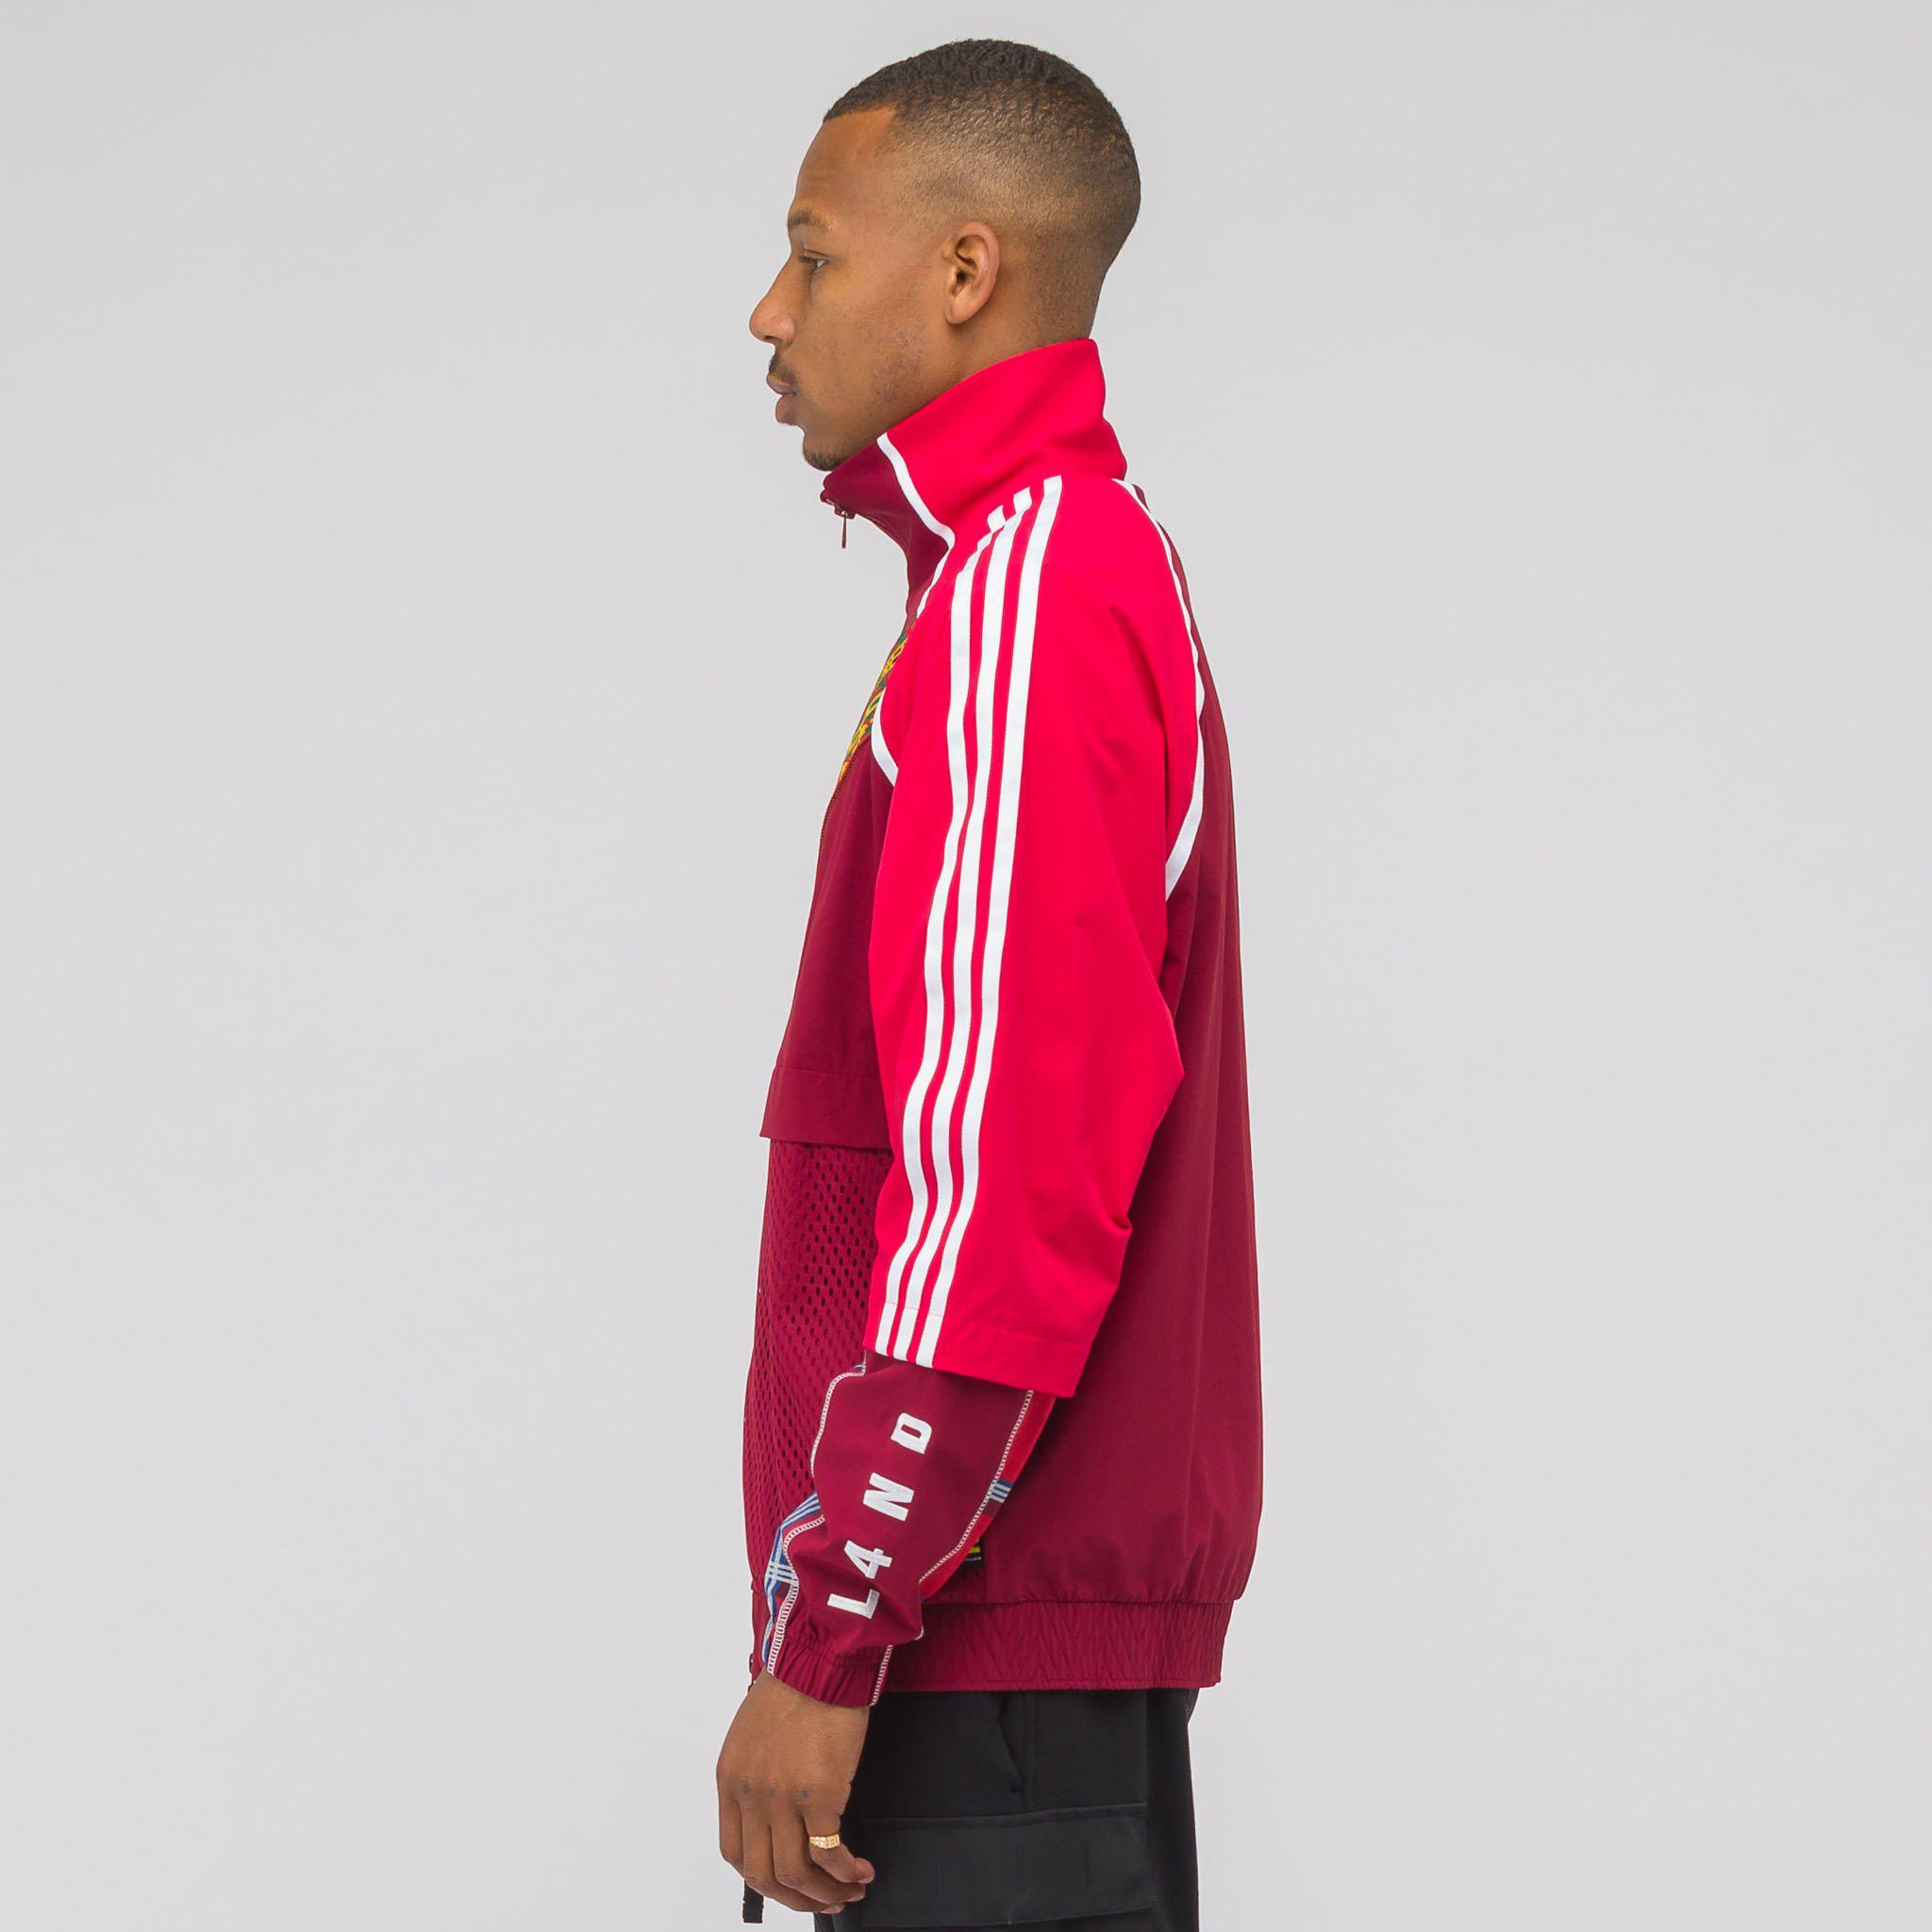 c59e85911240 Lyst - adidas X Pharrell Williams Solar Hu Track Top In Red in Red ...